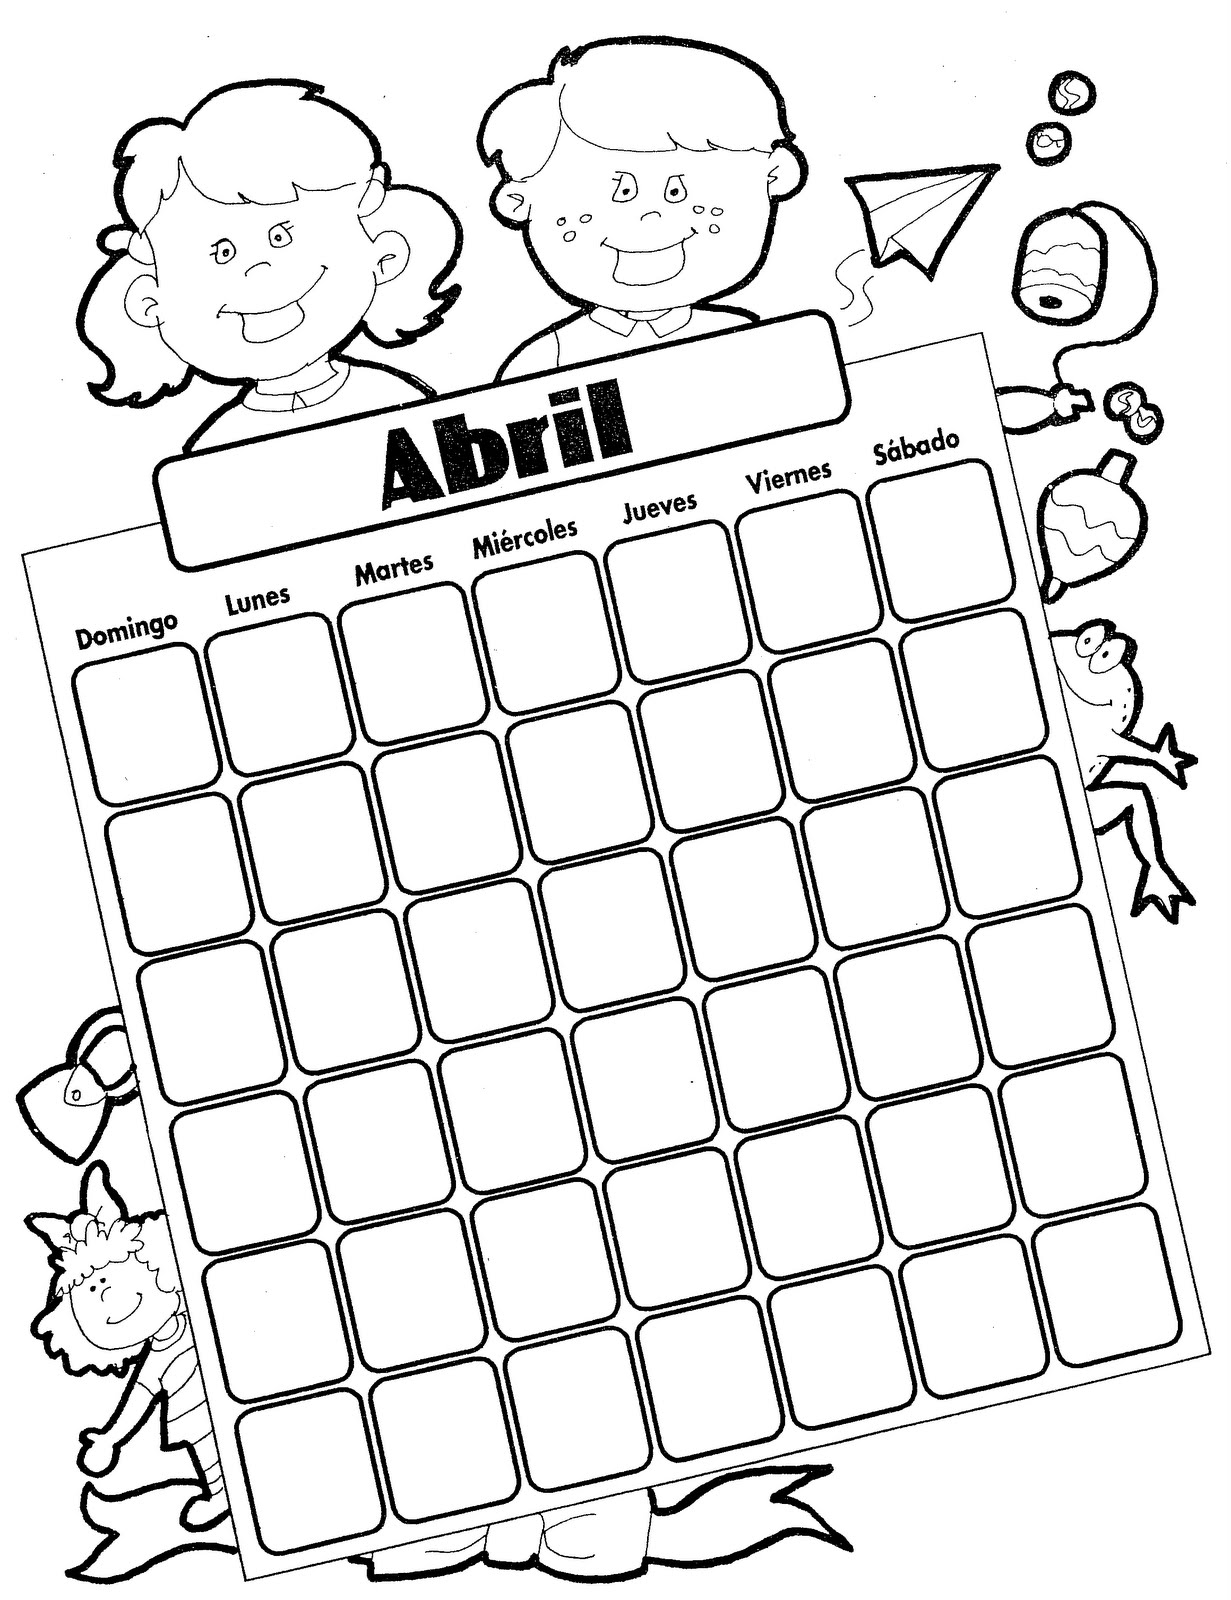 Calendario del mes de abril para colorear